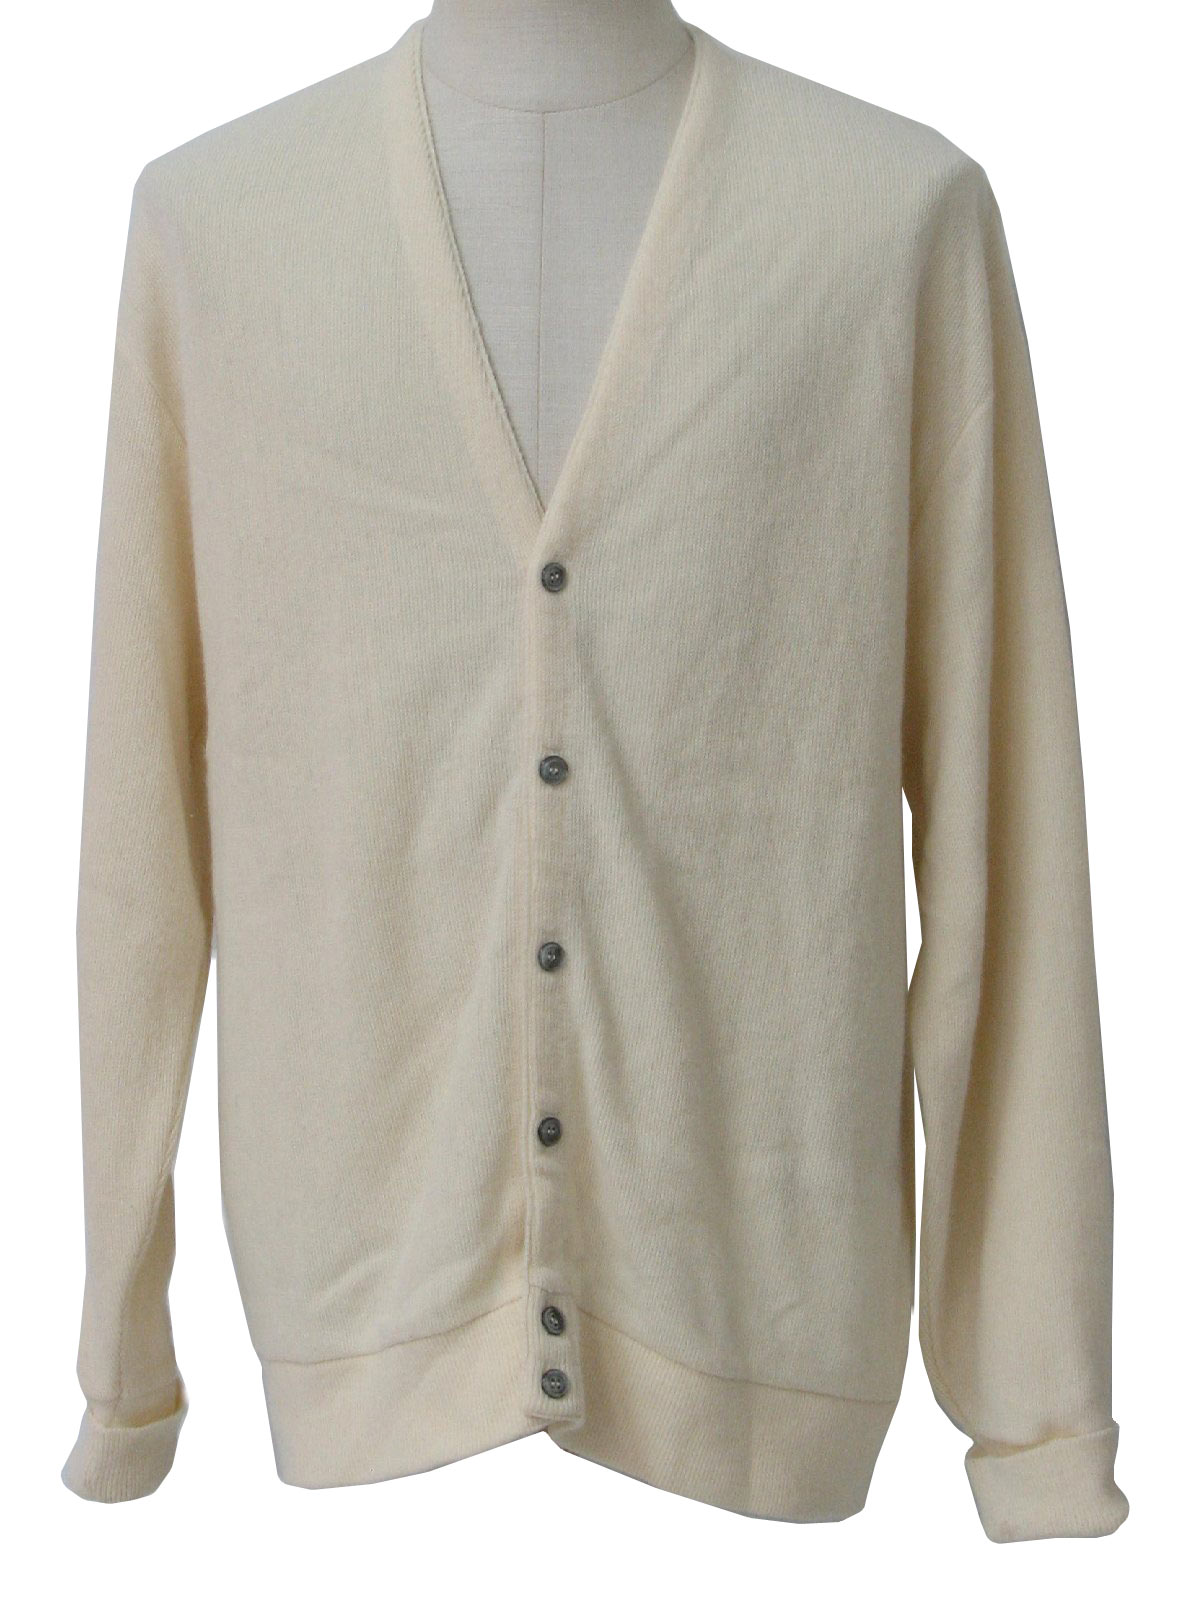 Retro 1980s Caridgan Sweater: 80s -Cypress Links- Mens cream ...